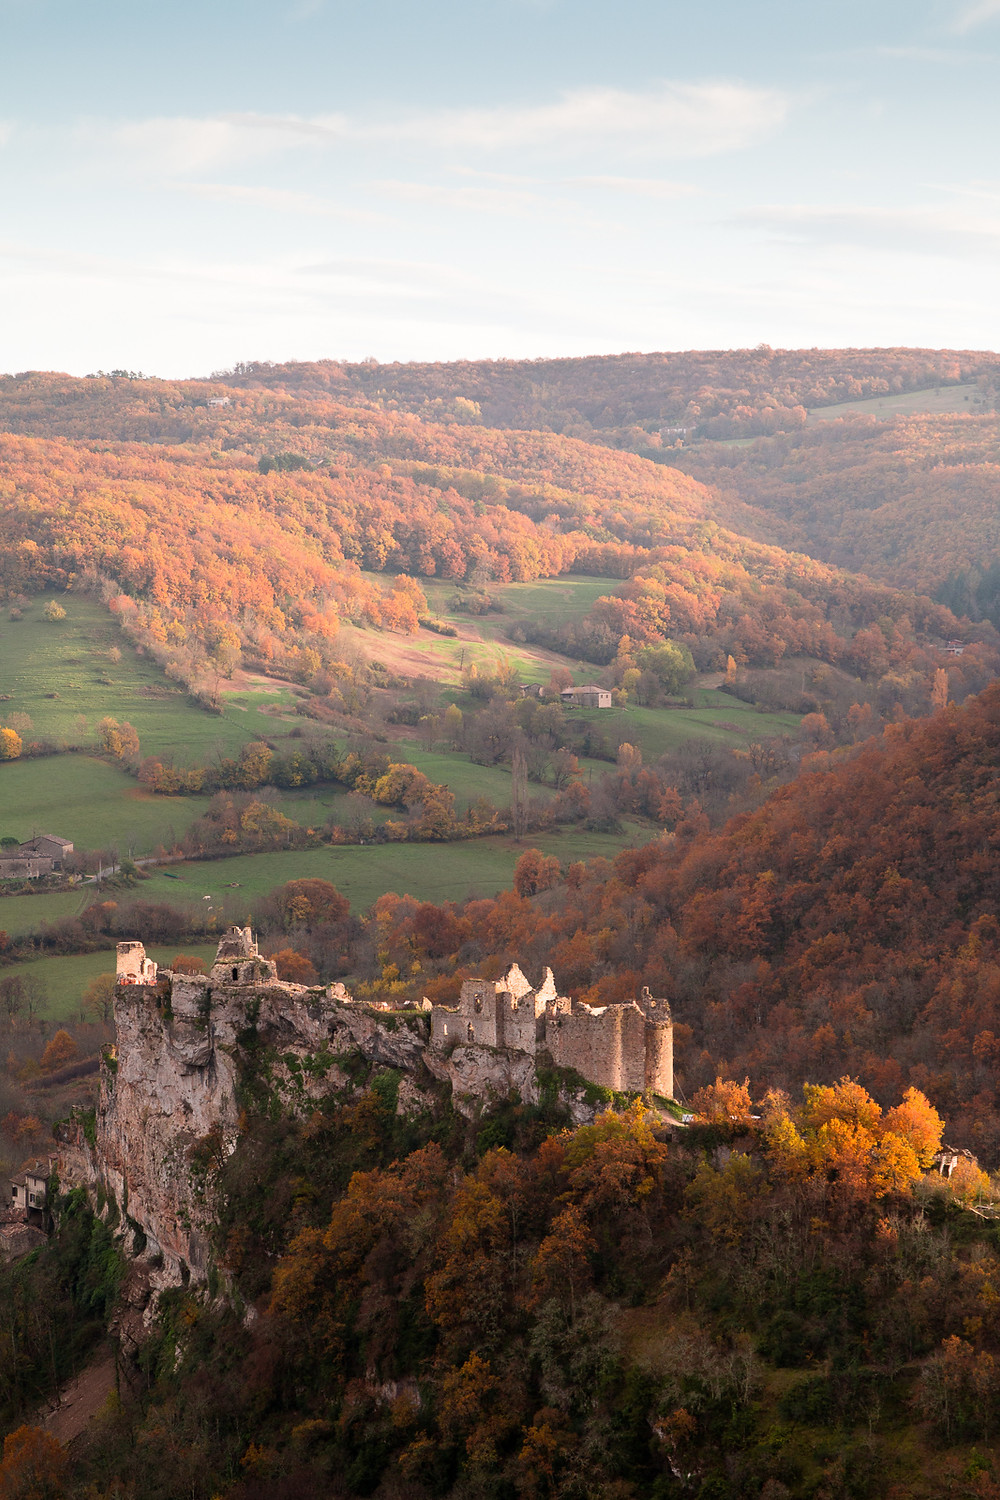 Penne Castle from the air, late October